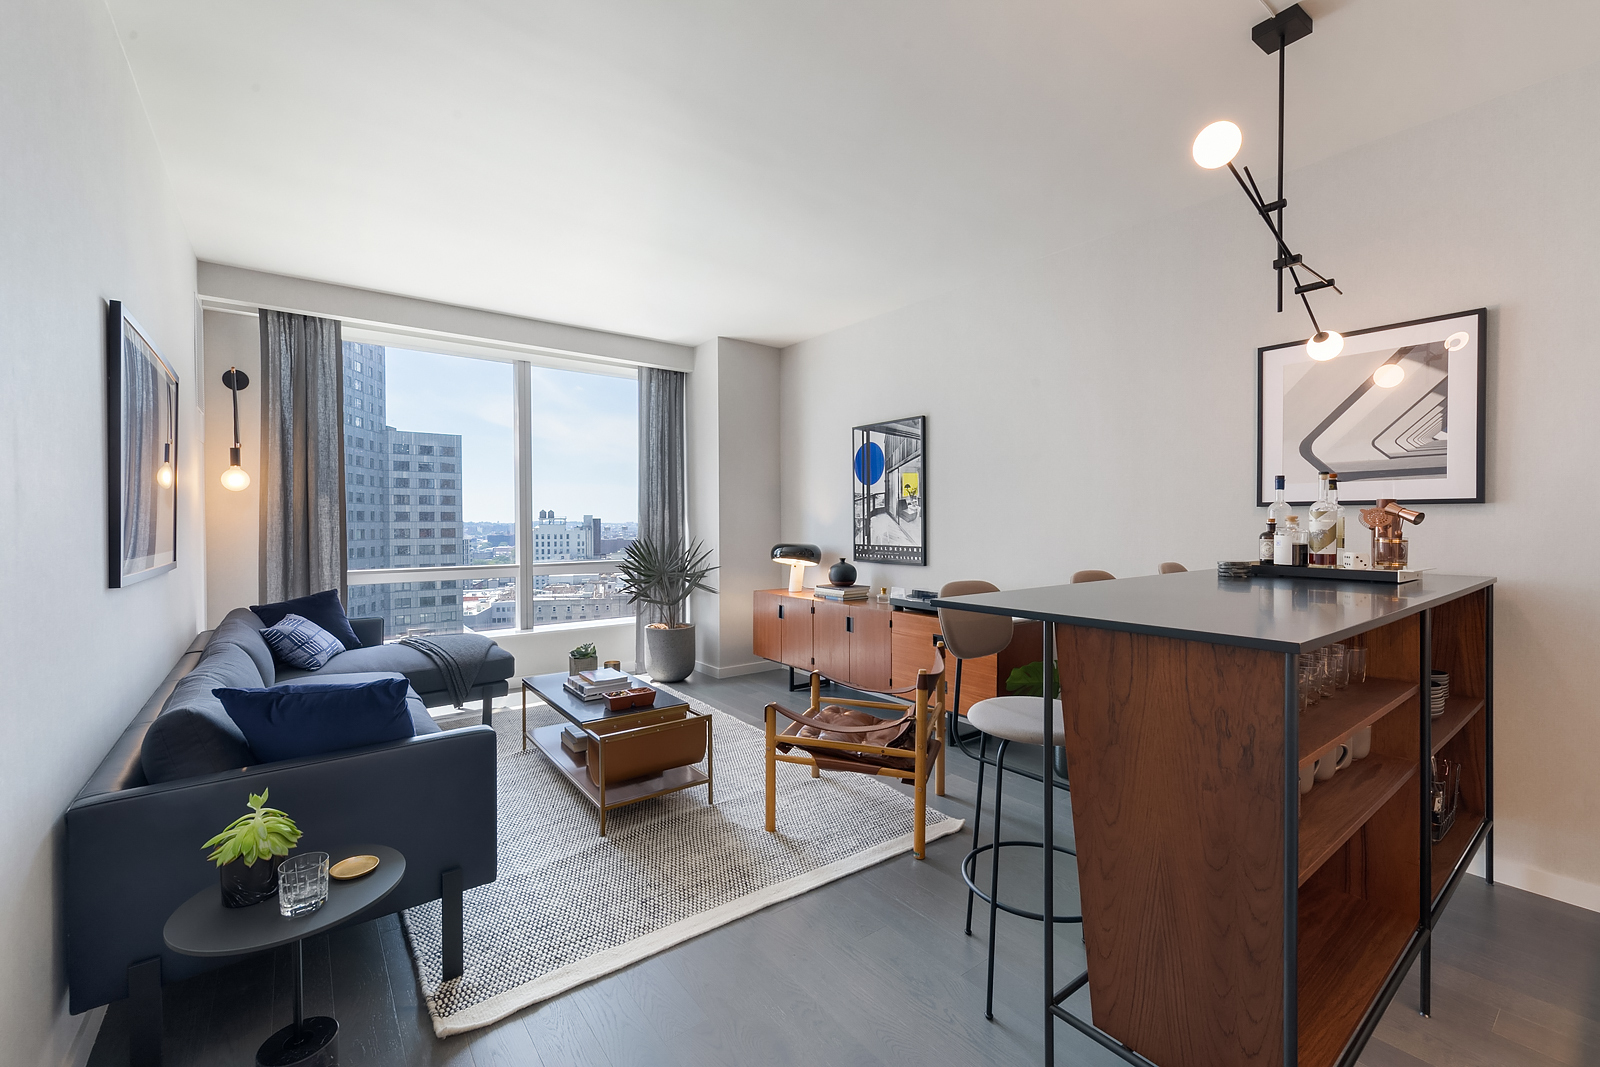 138 WILLOUGHBY ST 24G, Brooklyn, NY 11201